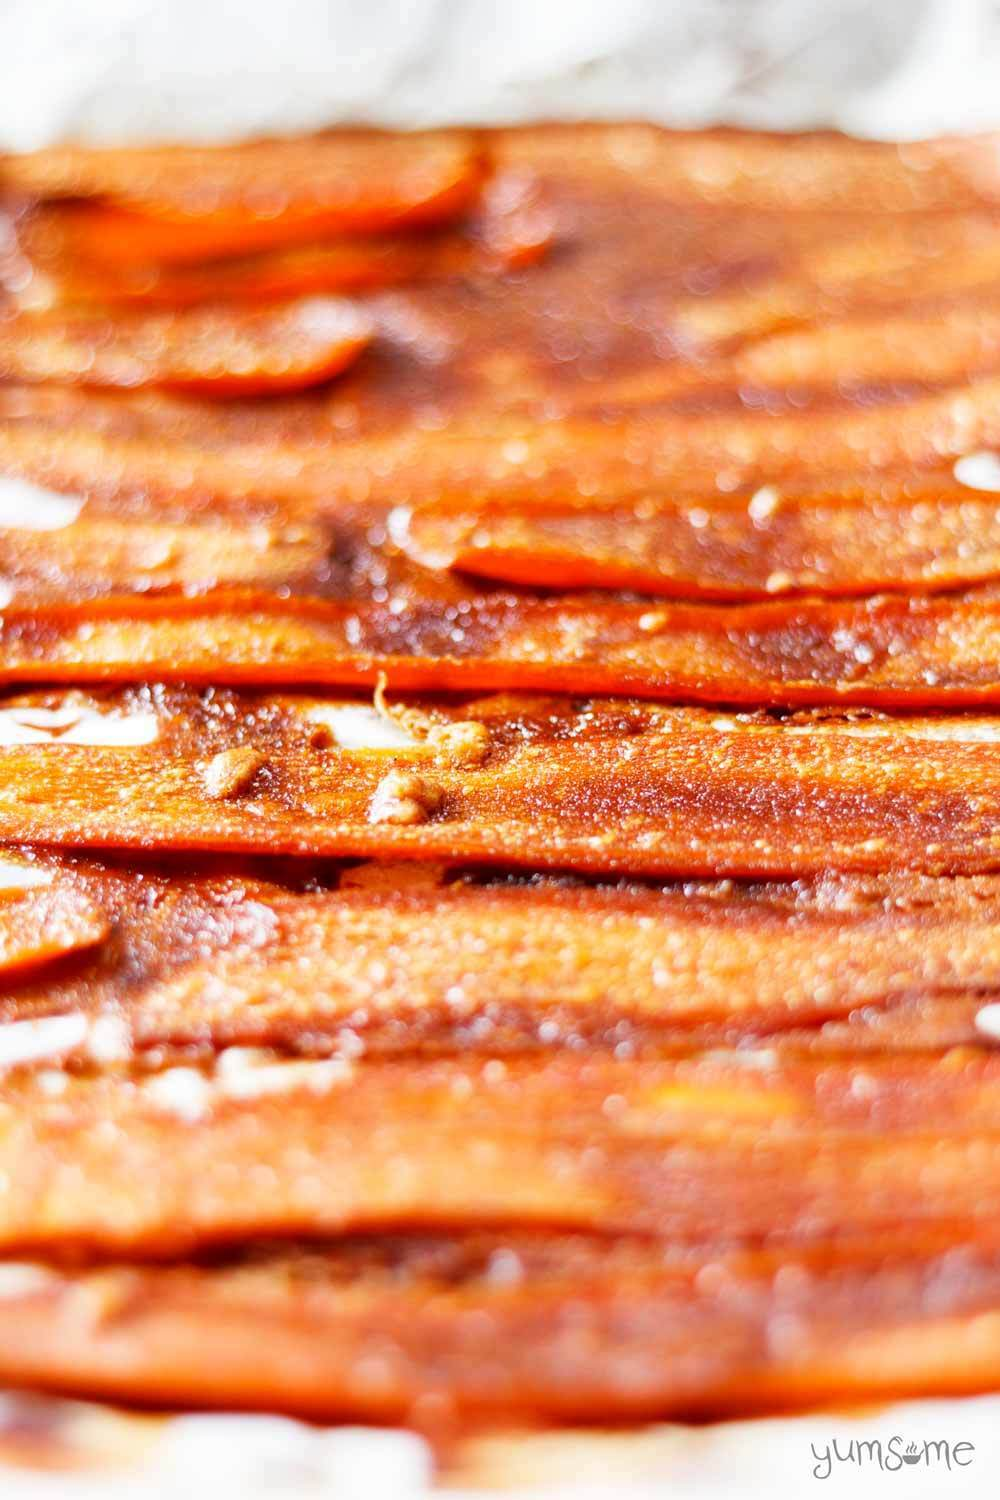 How To Make Yummy Carrot 'Bacon'